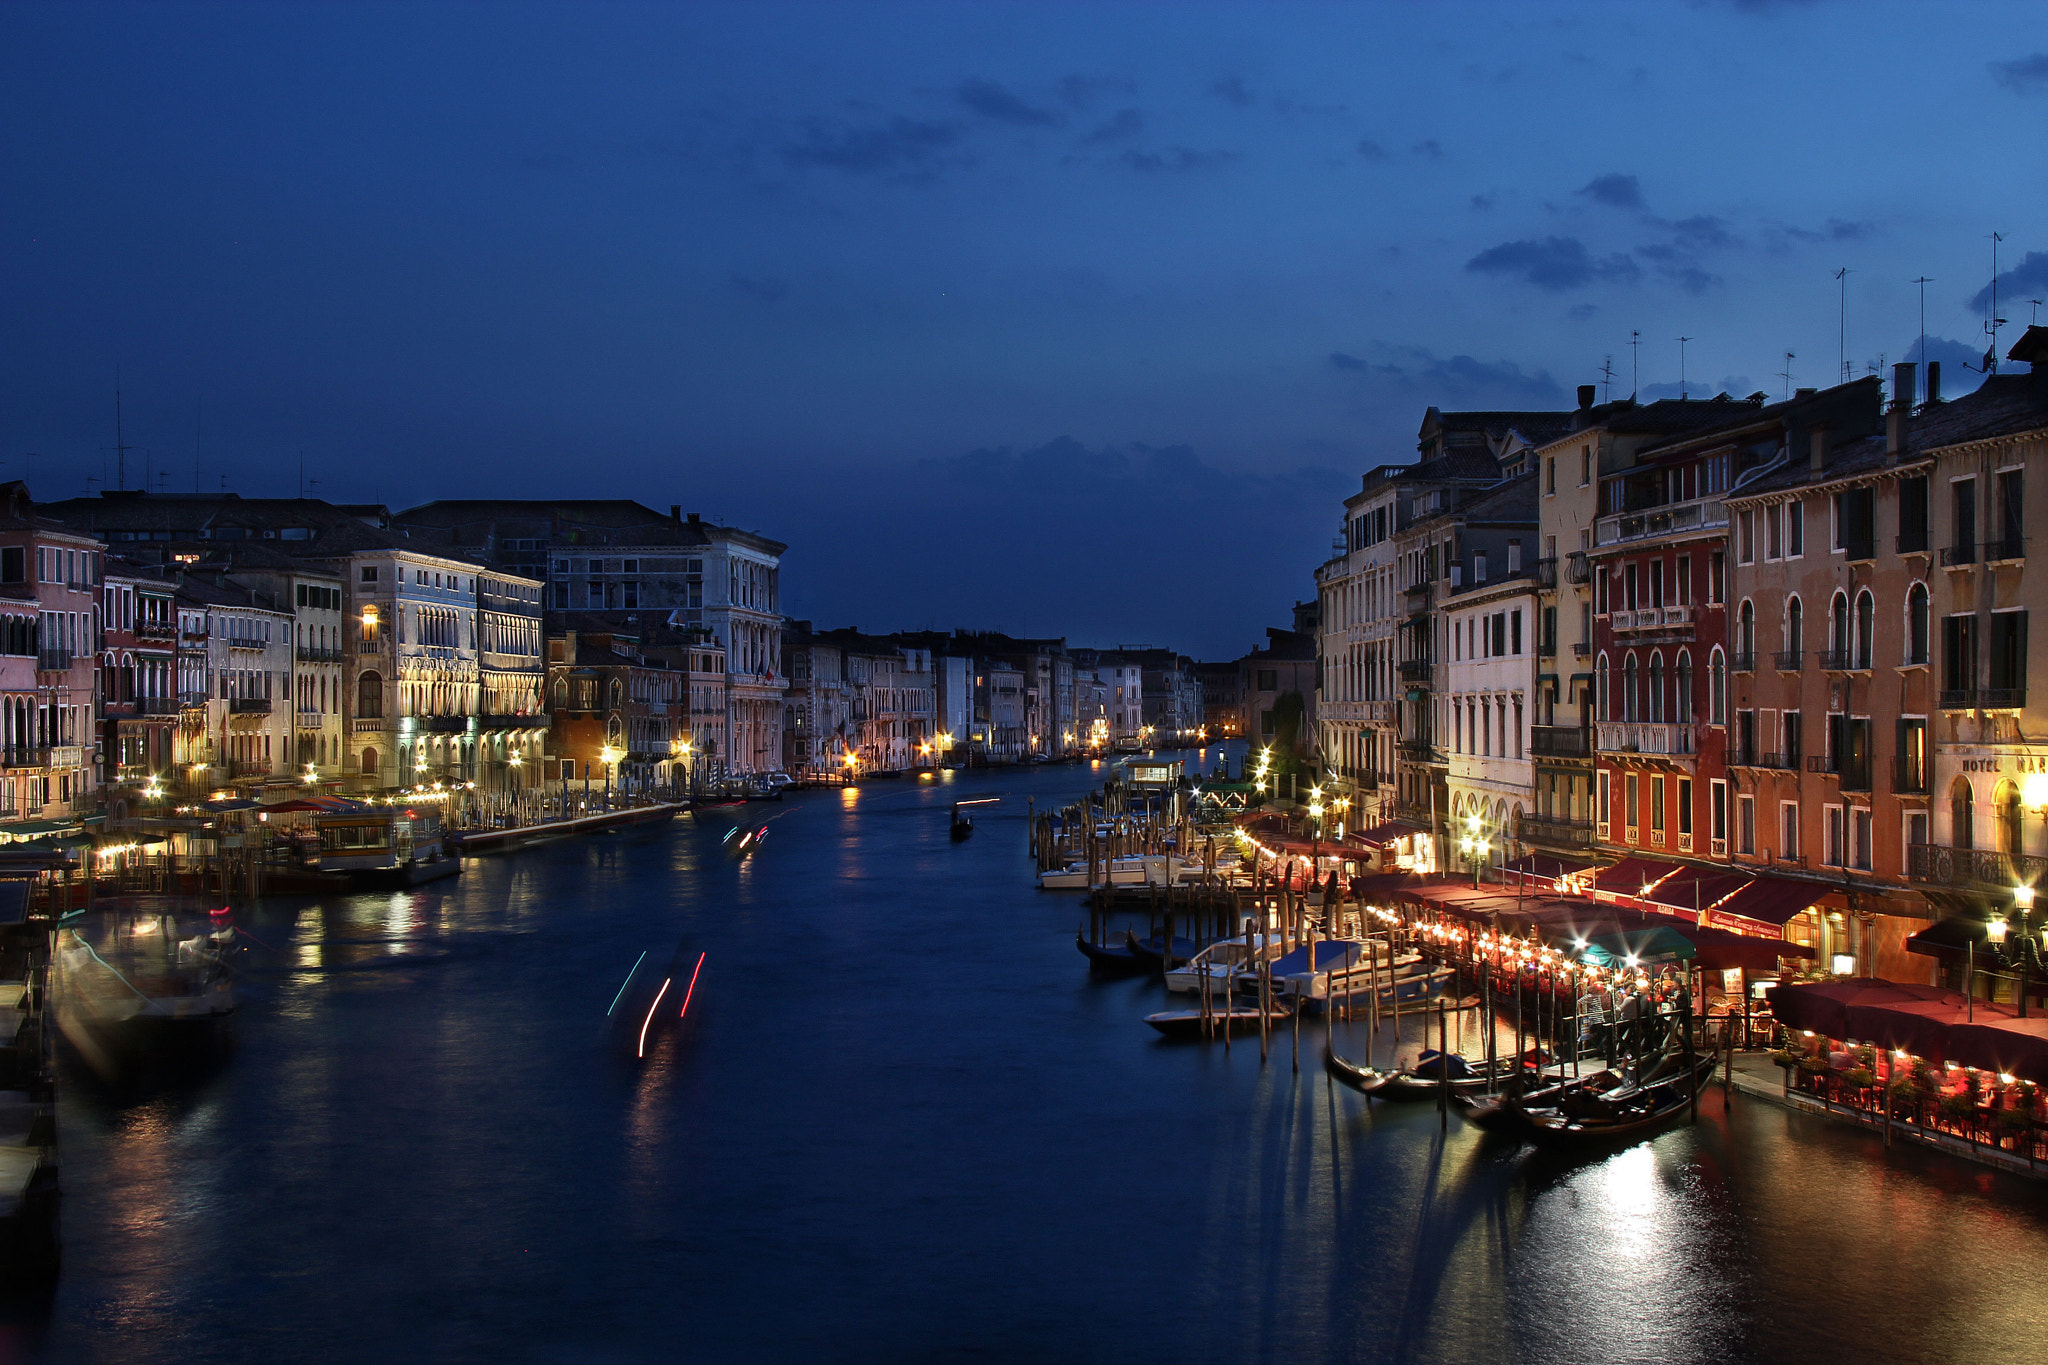 Photograph Blue Venice by Carlos Luque on 500px